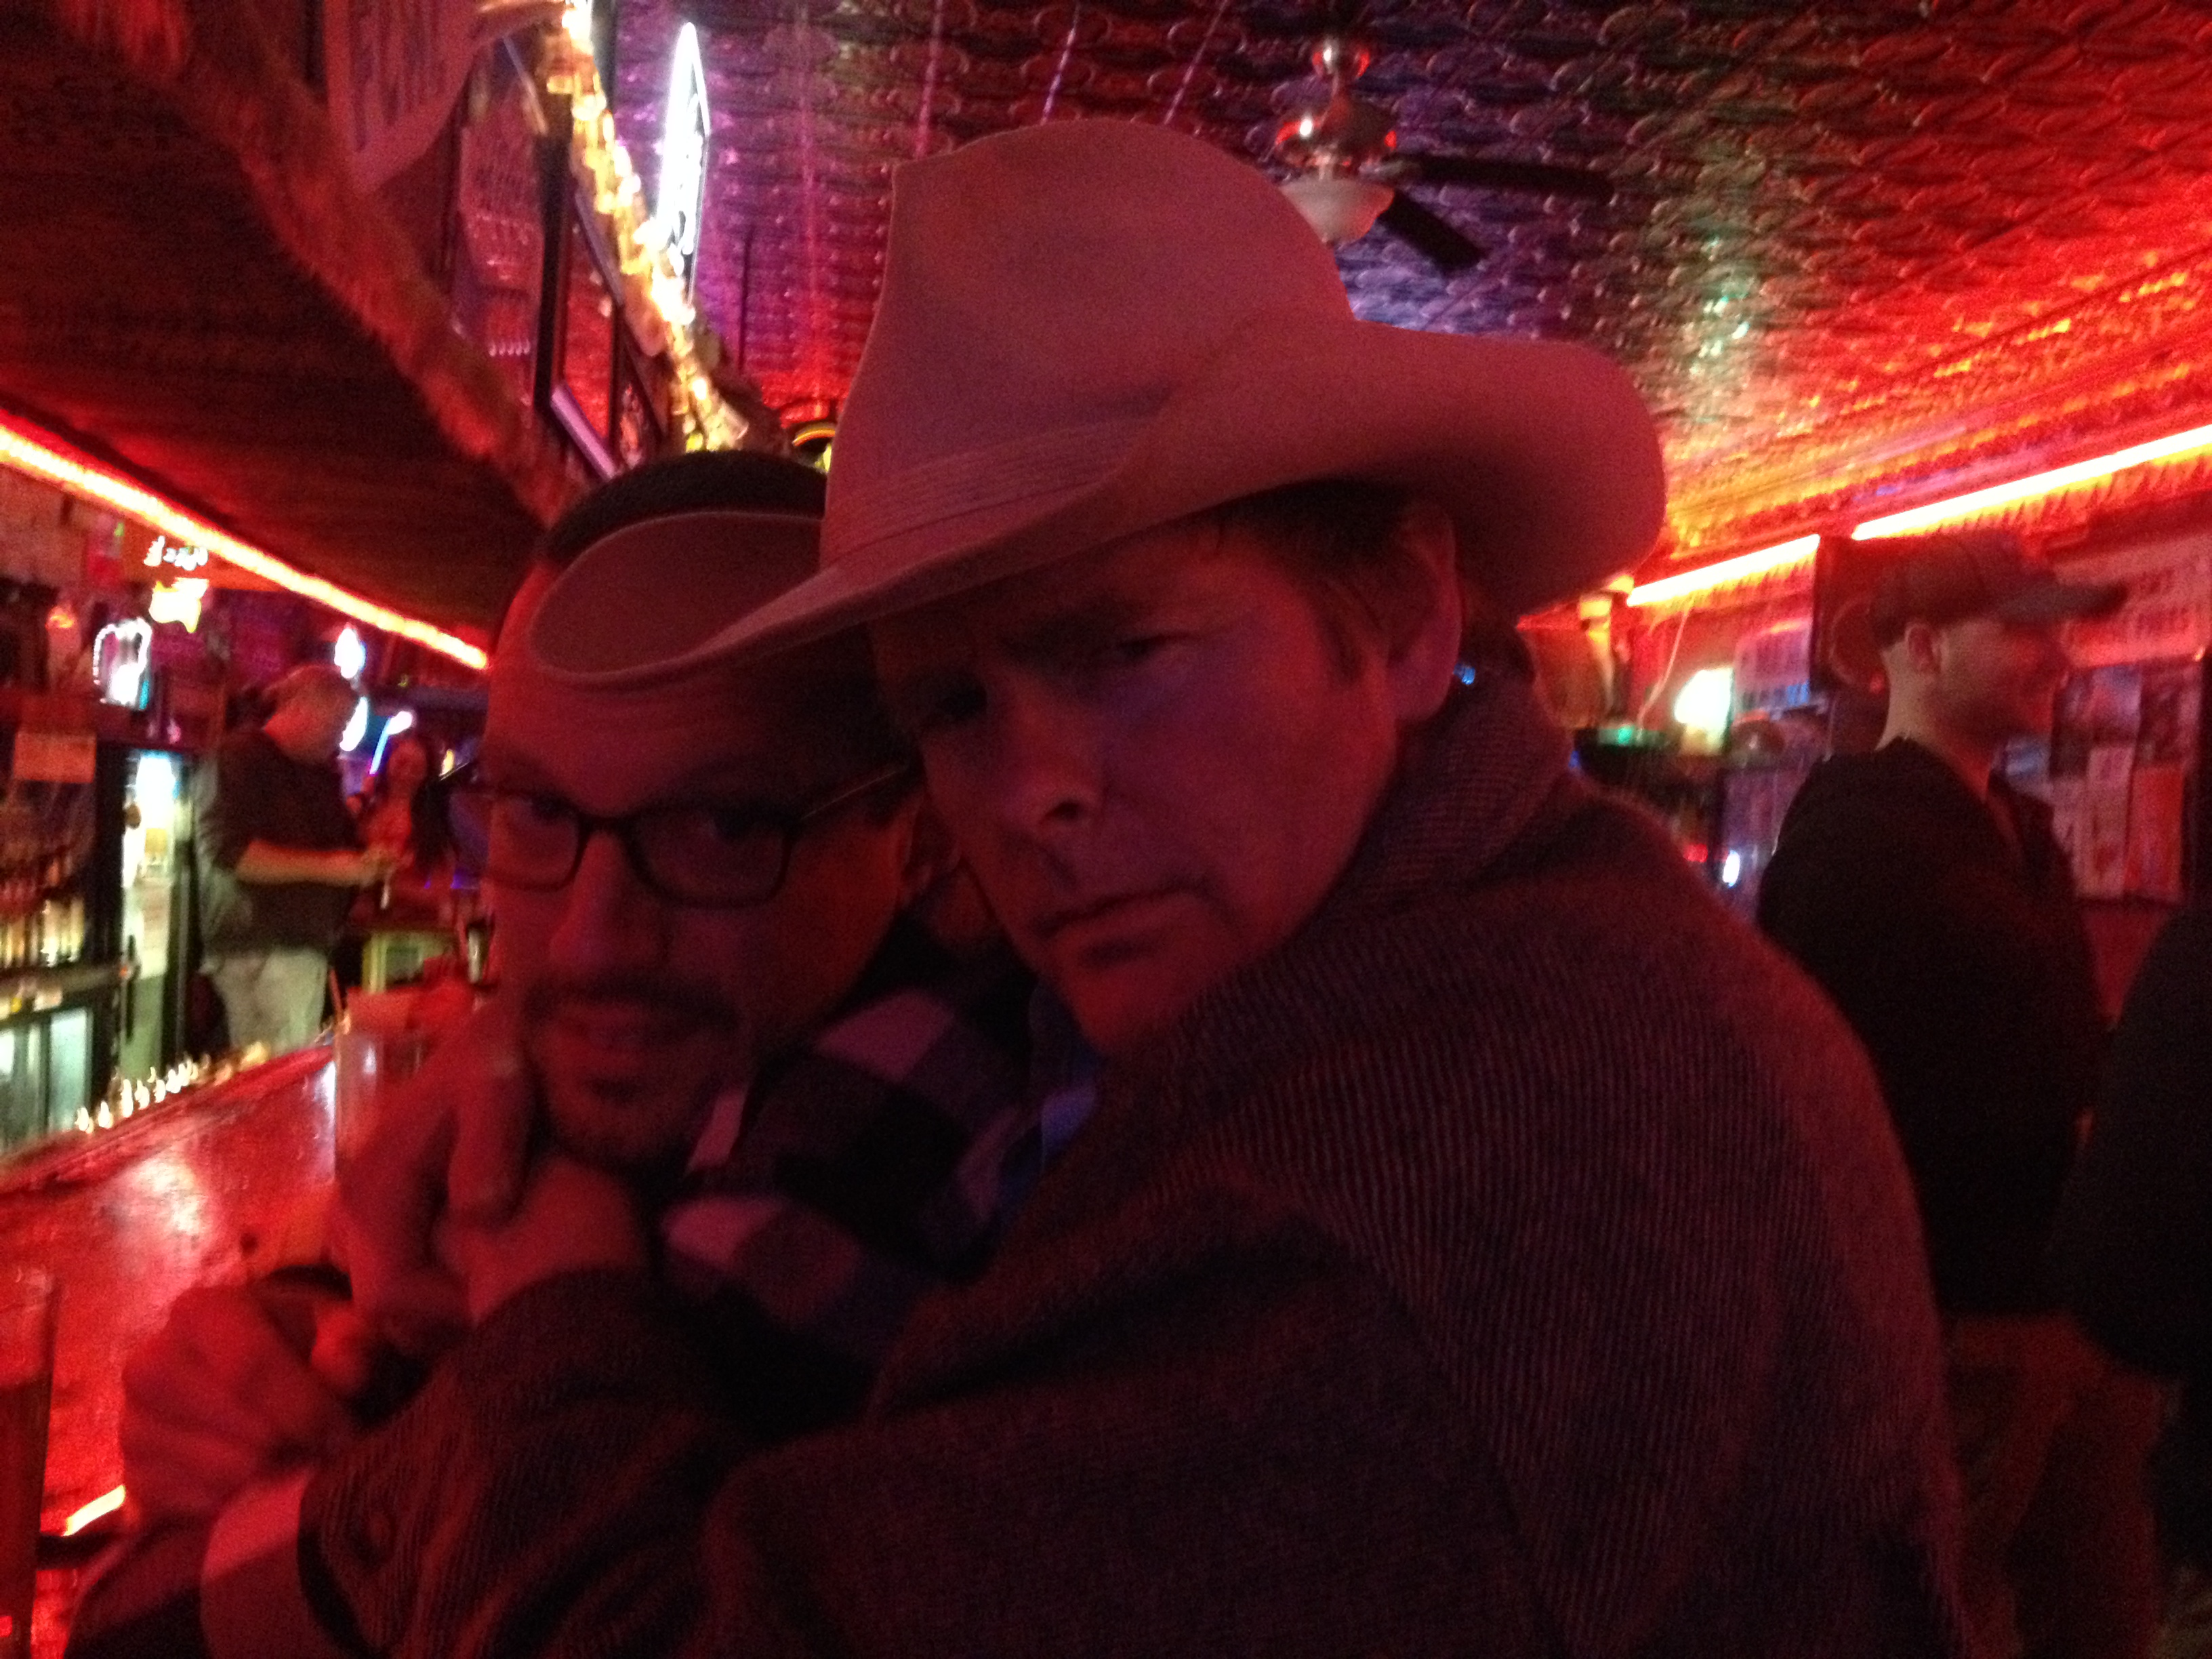 Kevin and Jason whooping it up in Red Lodge, MT